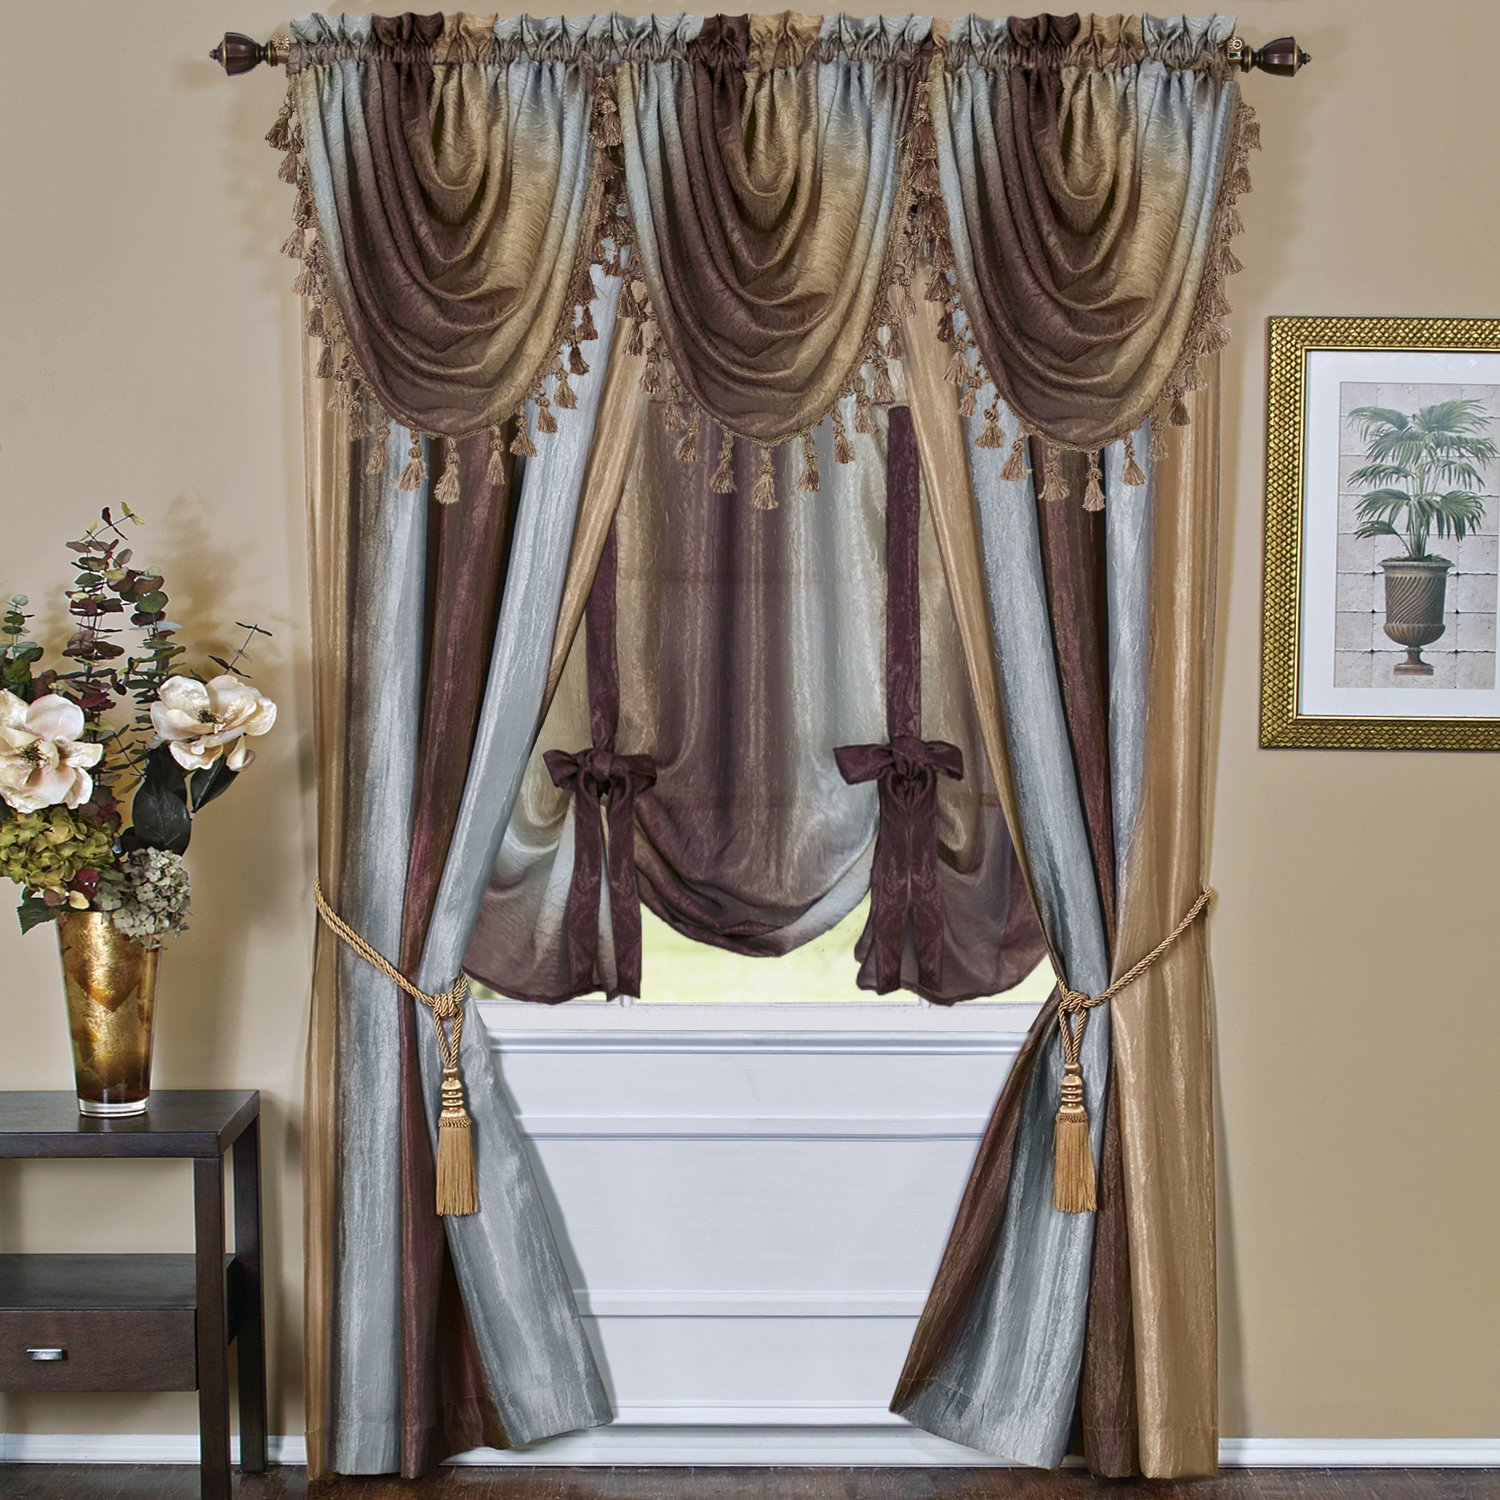 Ombre Curtains With Valance - Amazon com achim home furnishings ombre waterfall valance aubergine home kitchen